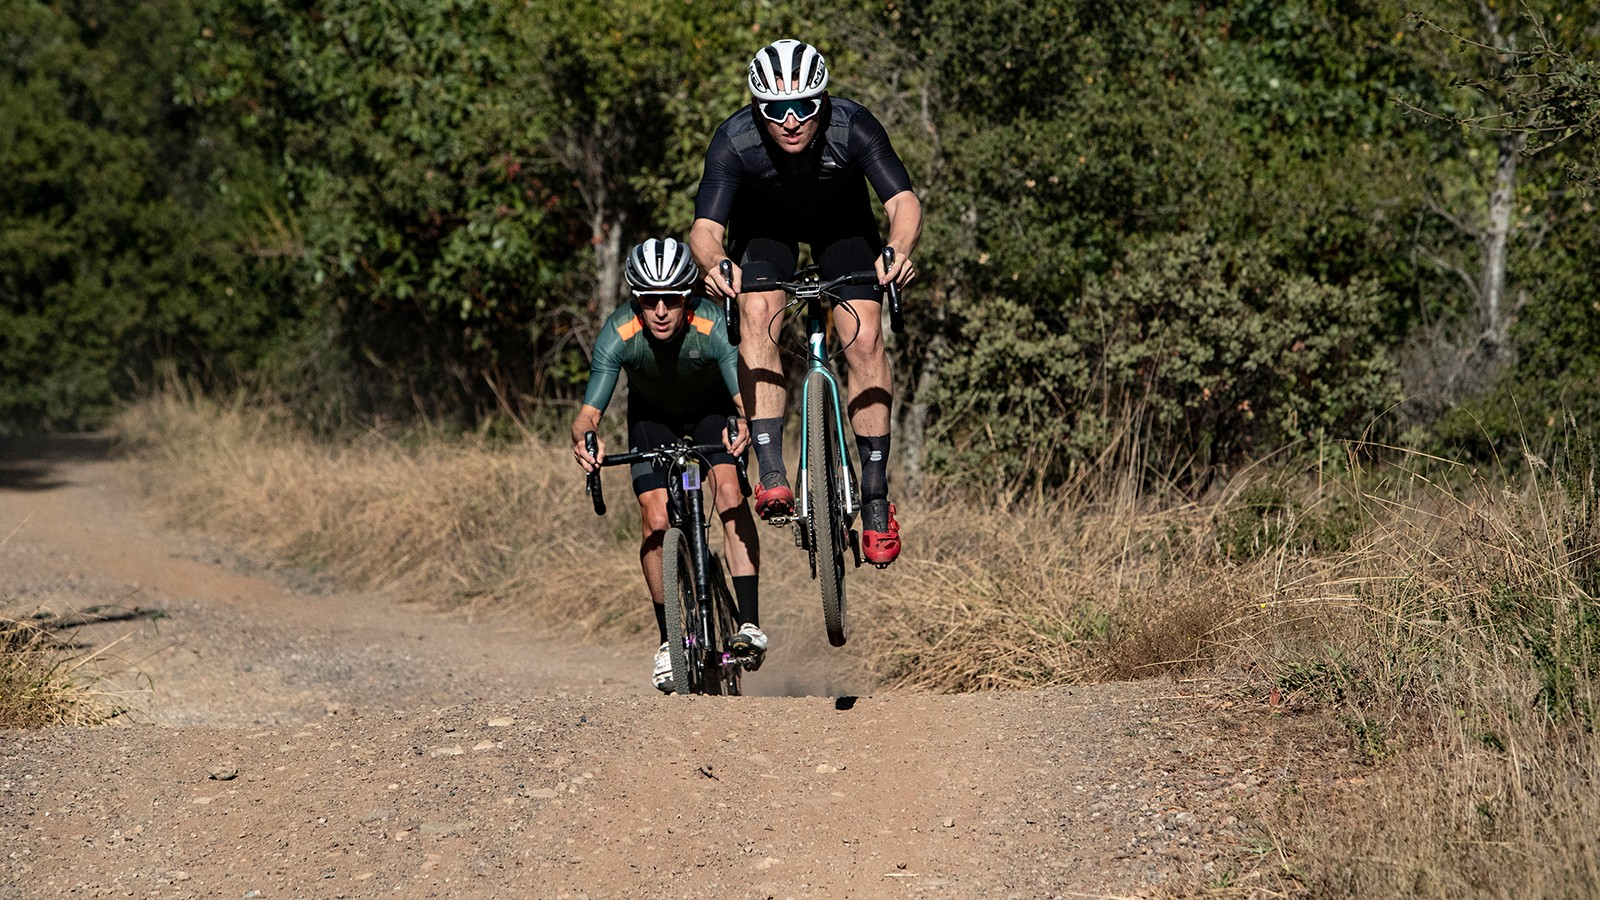 Riding hard and fast on gravel can be a blast